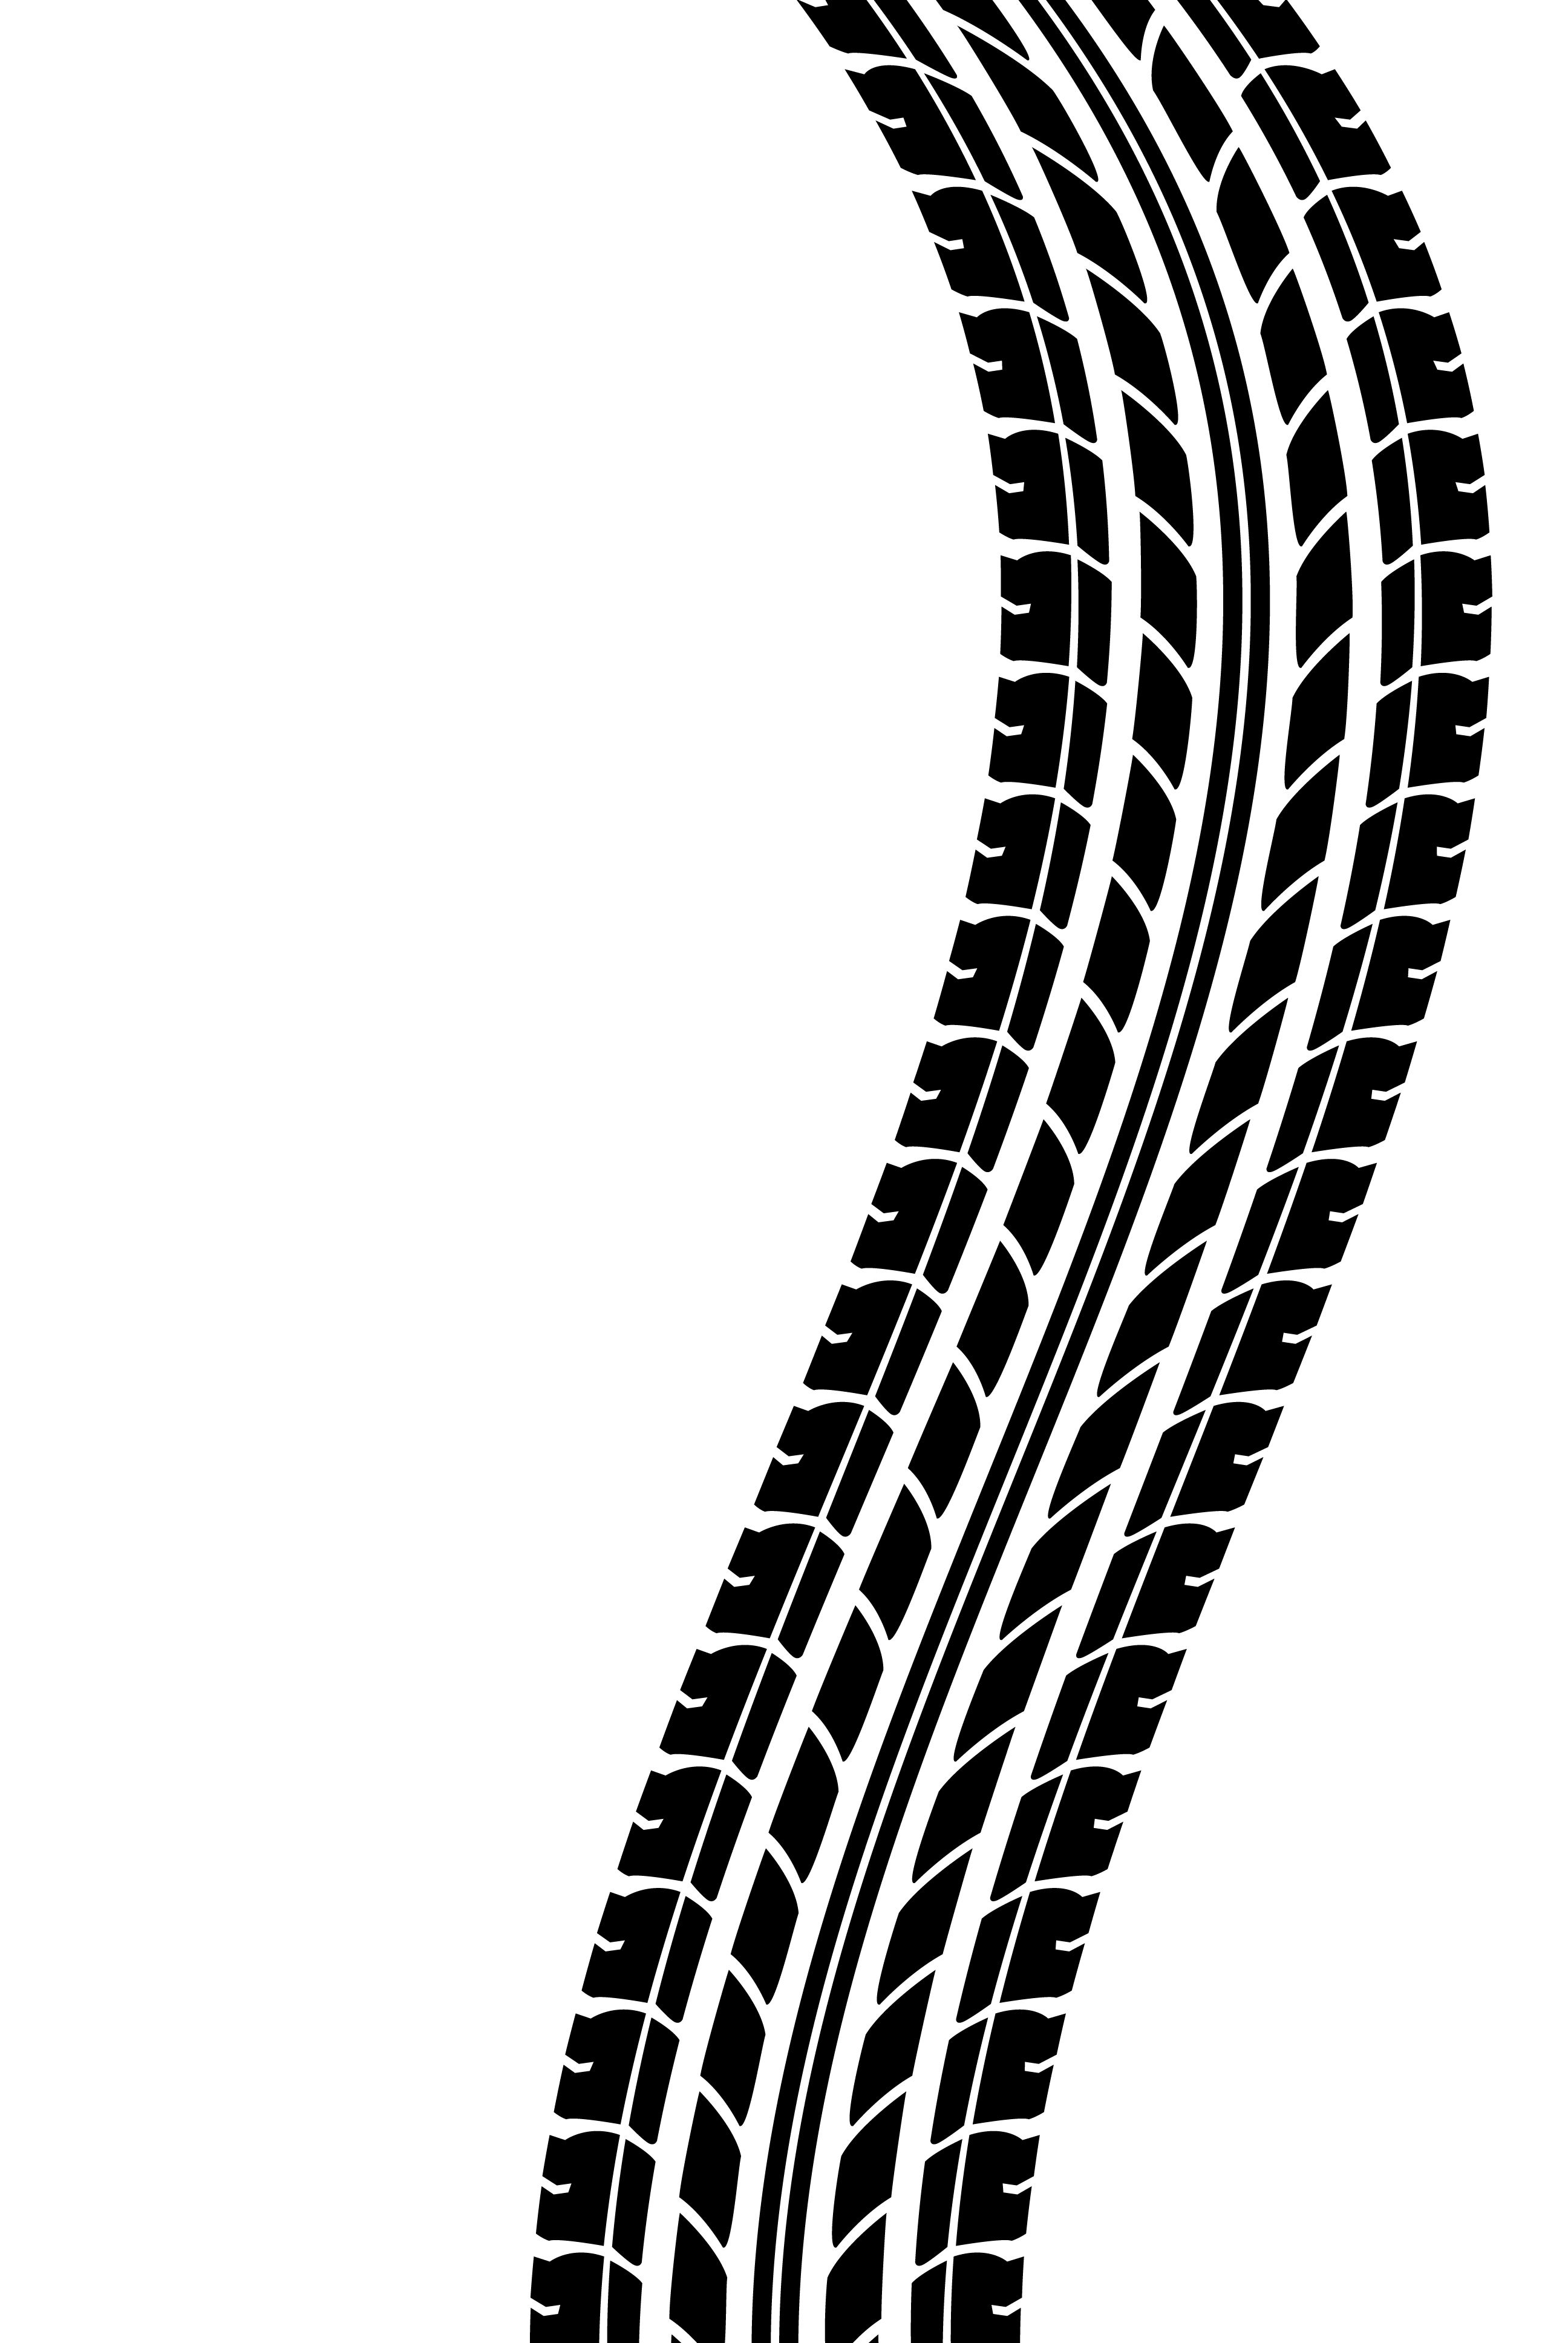 Images for train bakery. Track clipart truck tire track